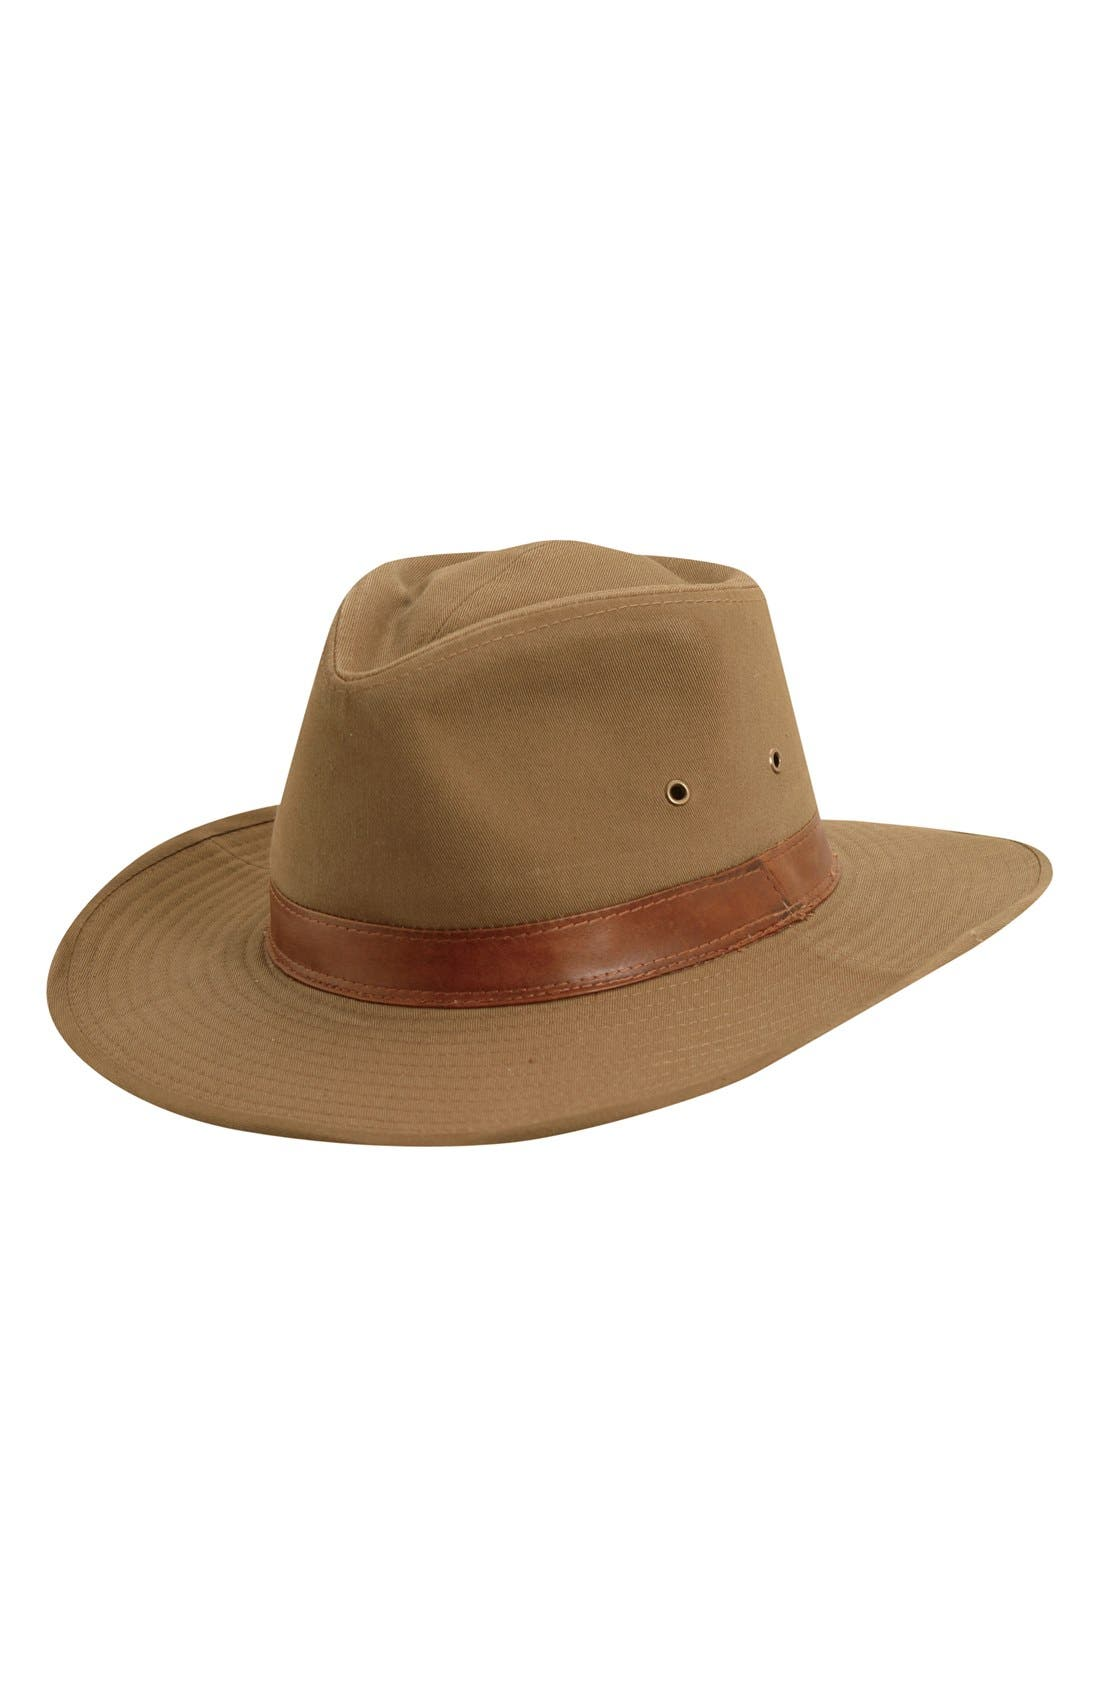 Cotton Outback Hat,                             Main thumbnail 1, color,                             Bark